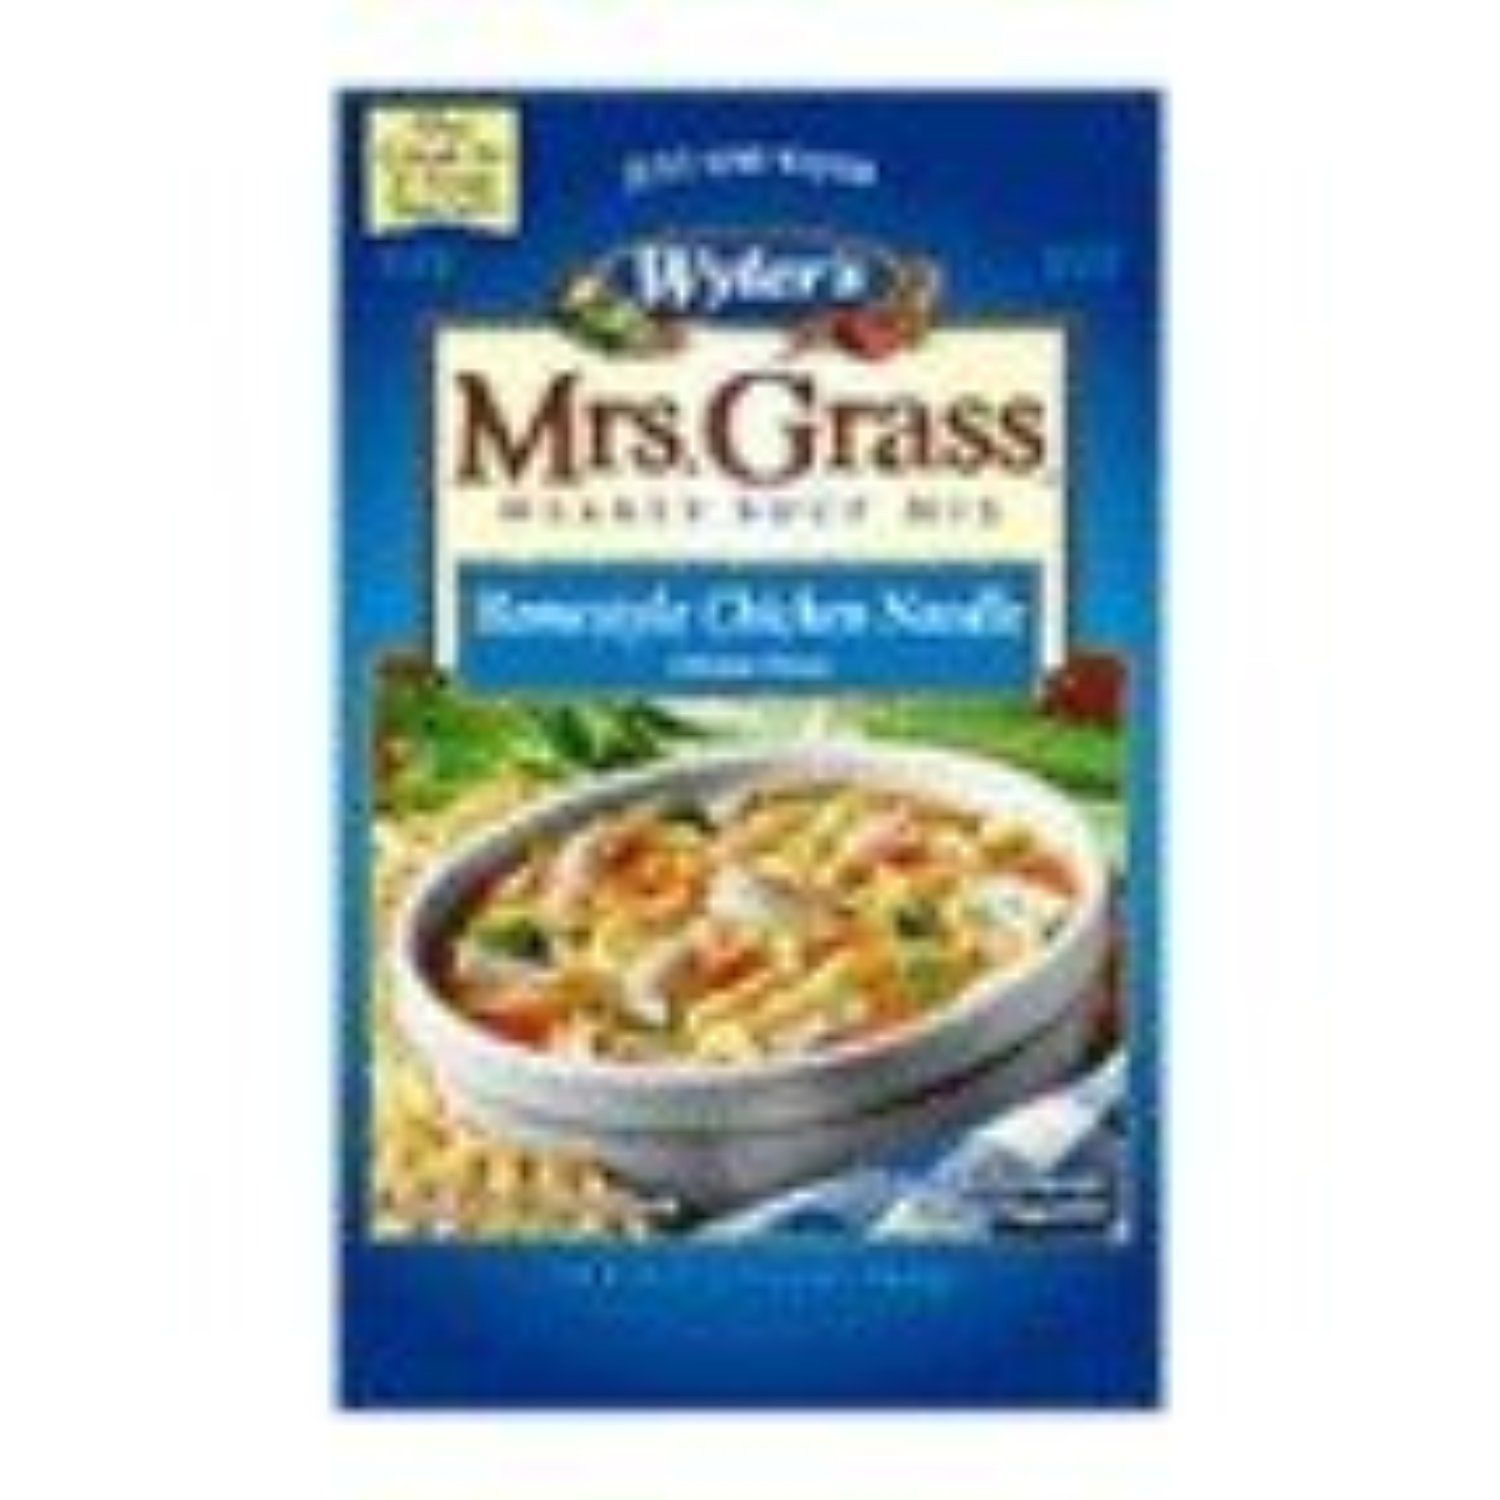 Mrs. Grass Hearty Soup Mix, Homestyle Chicken Noodle, 5.93 Ounce (Pack of 8) by Wyler's -- Awesome products selected by Anna Churchill